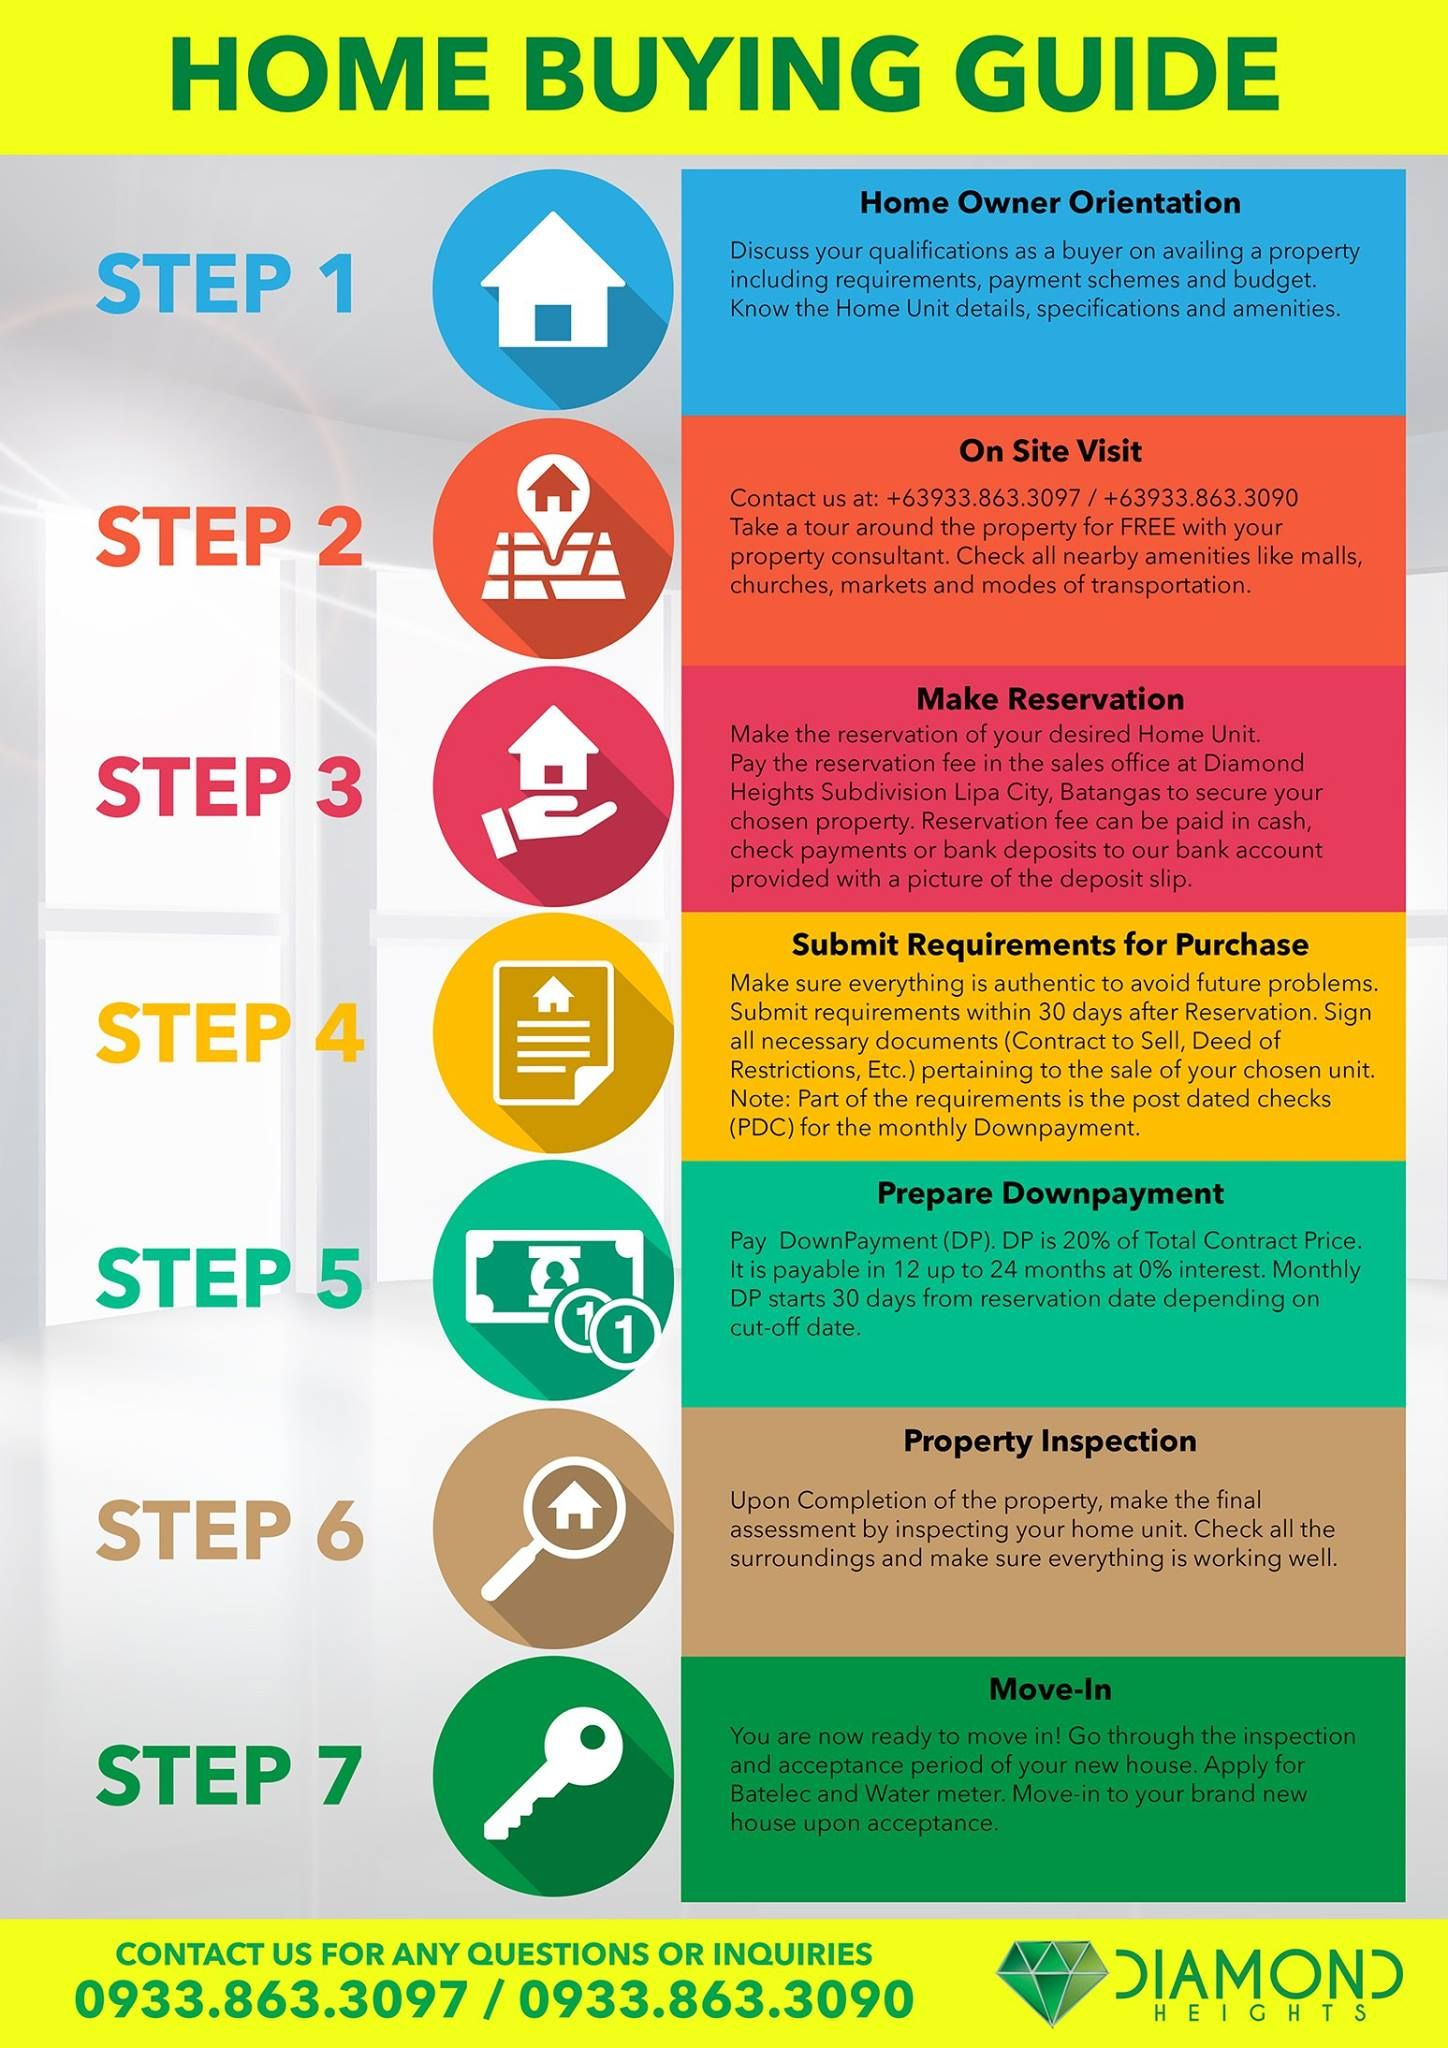 Home Buying Guide Home Buying Home Step